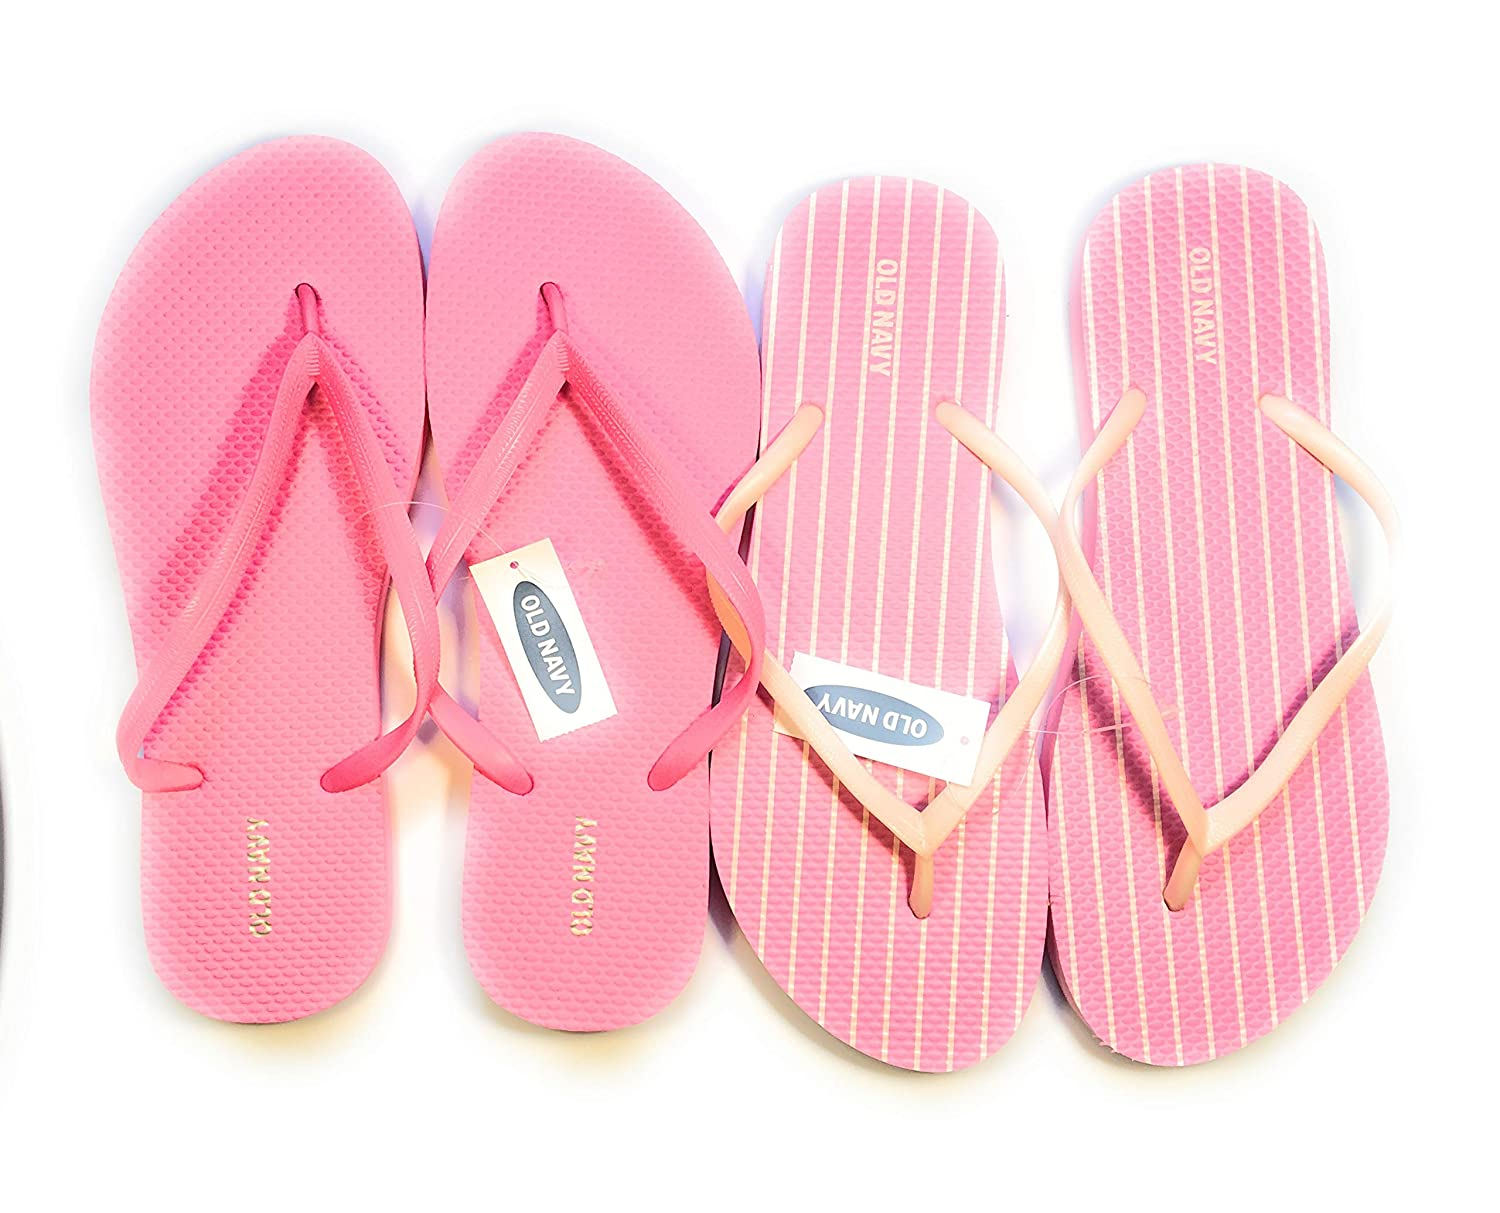 8e284d17119 Amazon.com  Old Navy Women Beach Summer Casual Flip Flop Sandals  Clothing